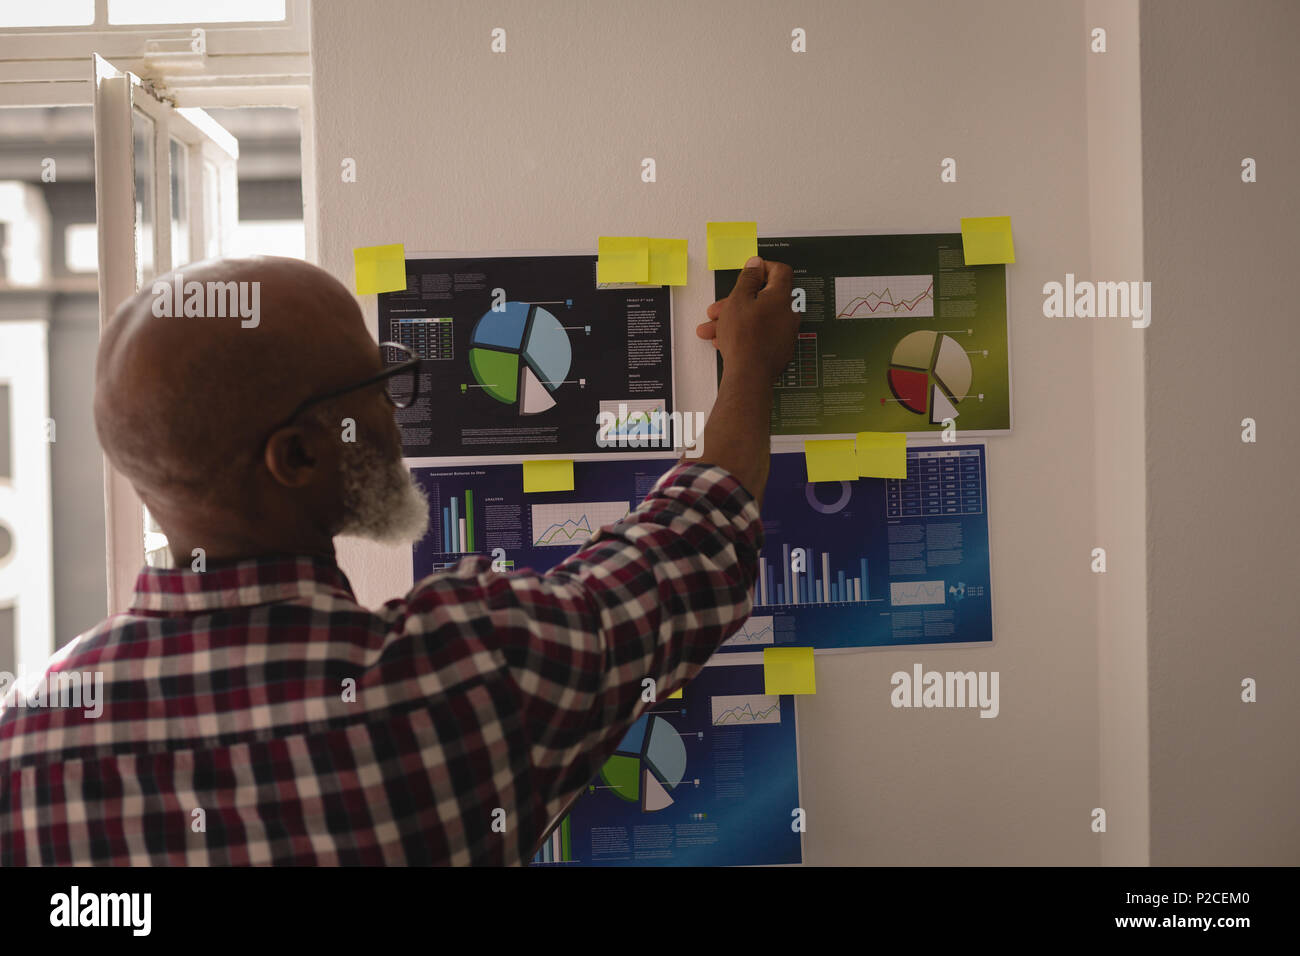 Senior graphic designer looking at sticky notes - Stock Image